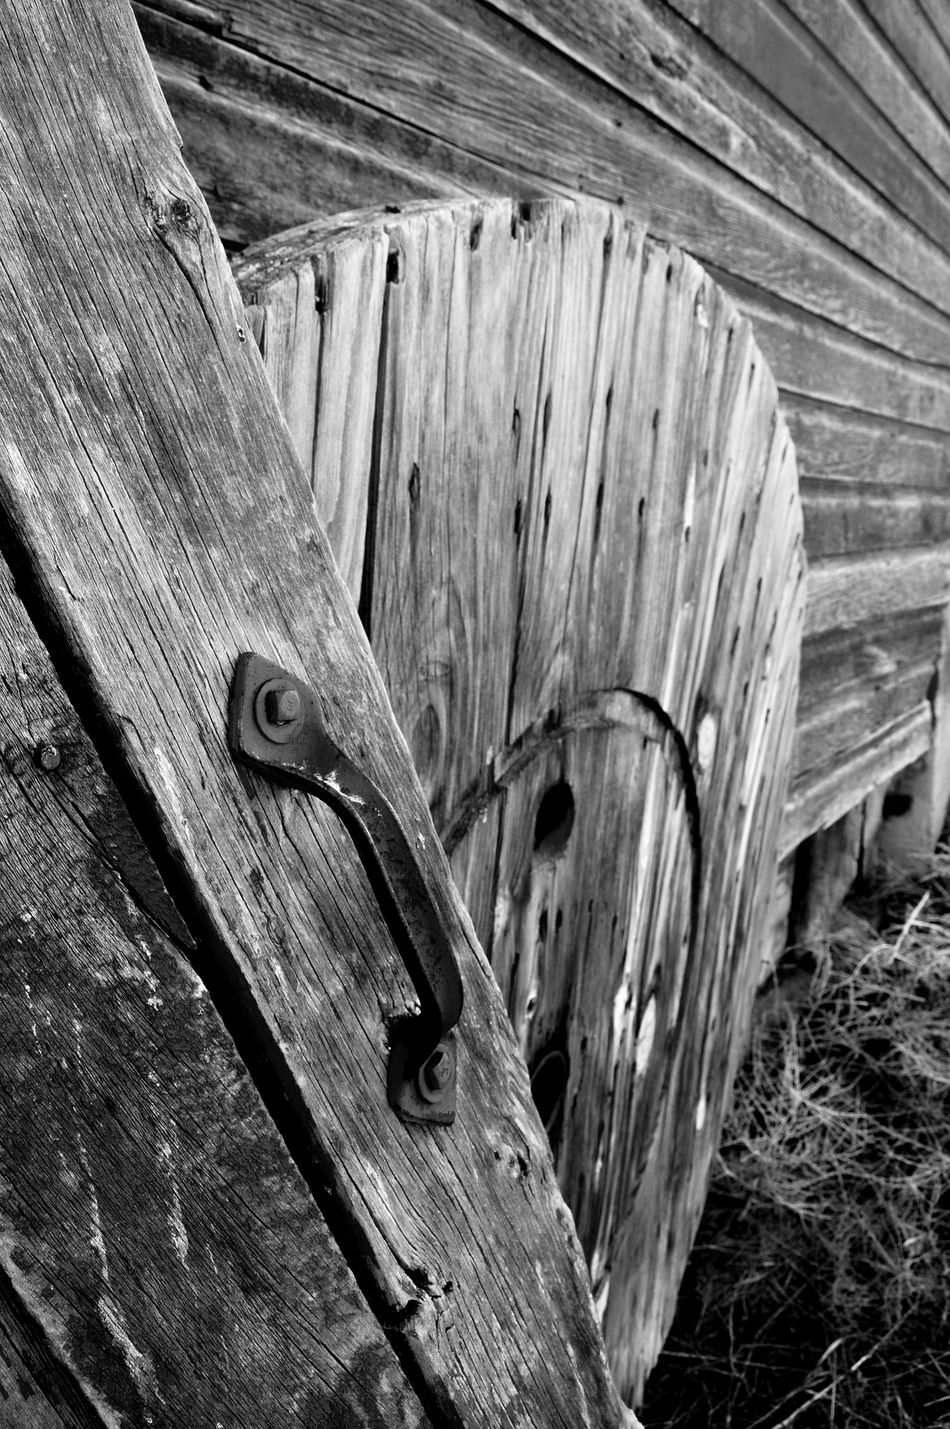 Wood against wood Abandoned Barn Black And Whie Close-up Day No People Outdoors Ranch Wood - Material